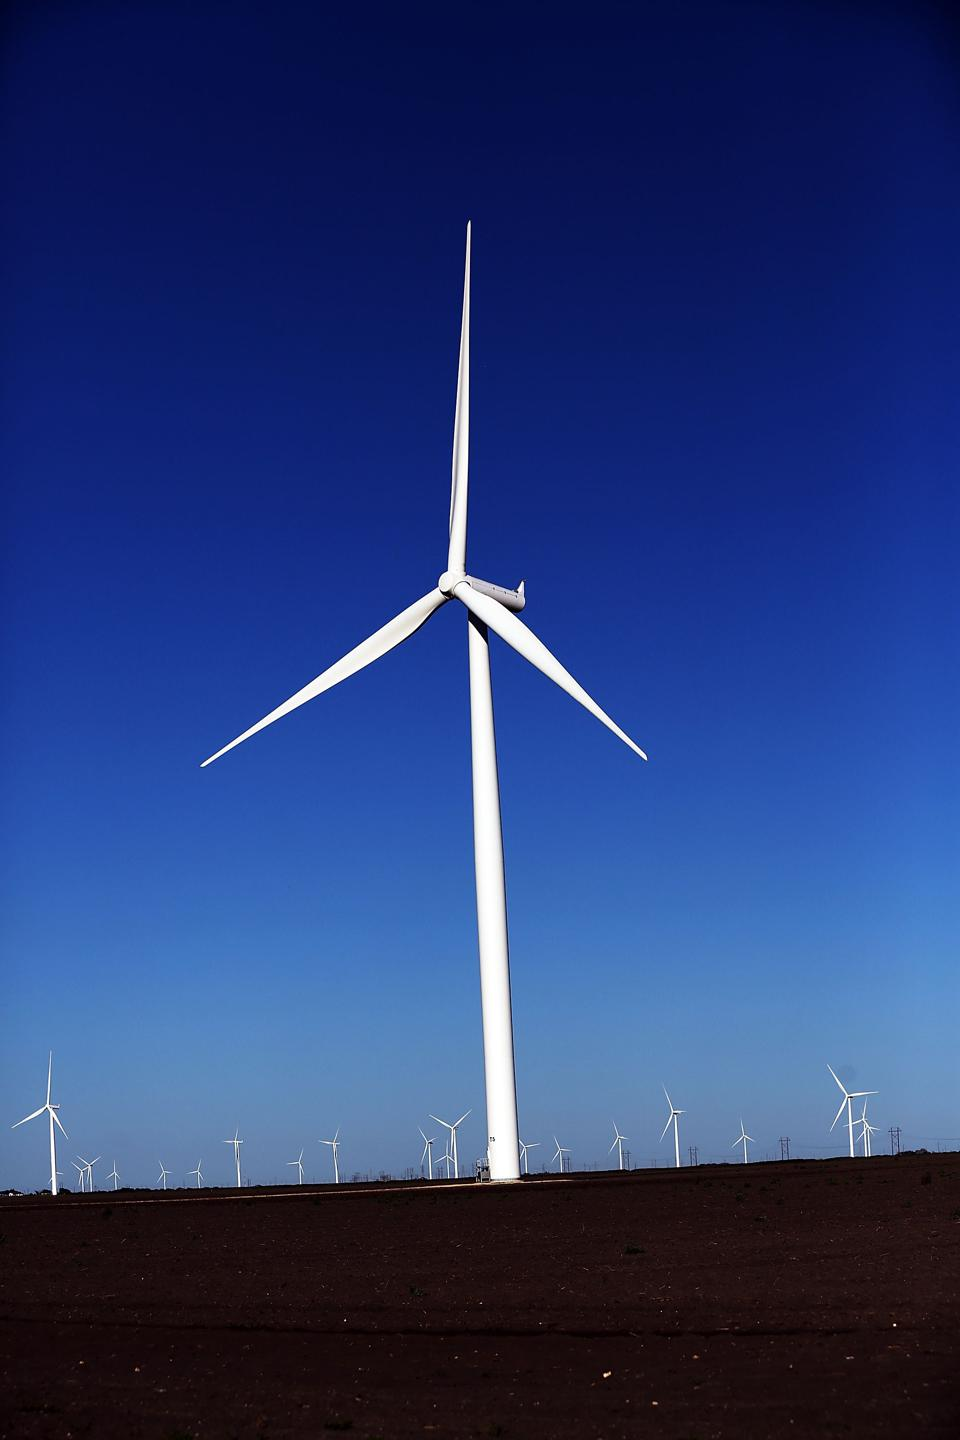 wind power cluster in denmark 2017 was a record year for danish wind power and denmark is on track to surpassing its eu energy targets, says the ministry of energy, utilities and climate highest-ever levels of wind energy provision were set in 2017, with 434 percent of denmark's electricity consumption supplied by land and sea .